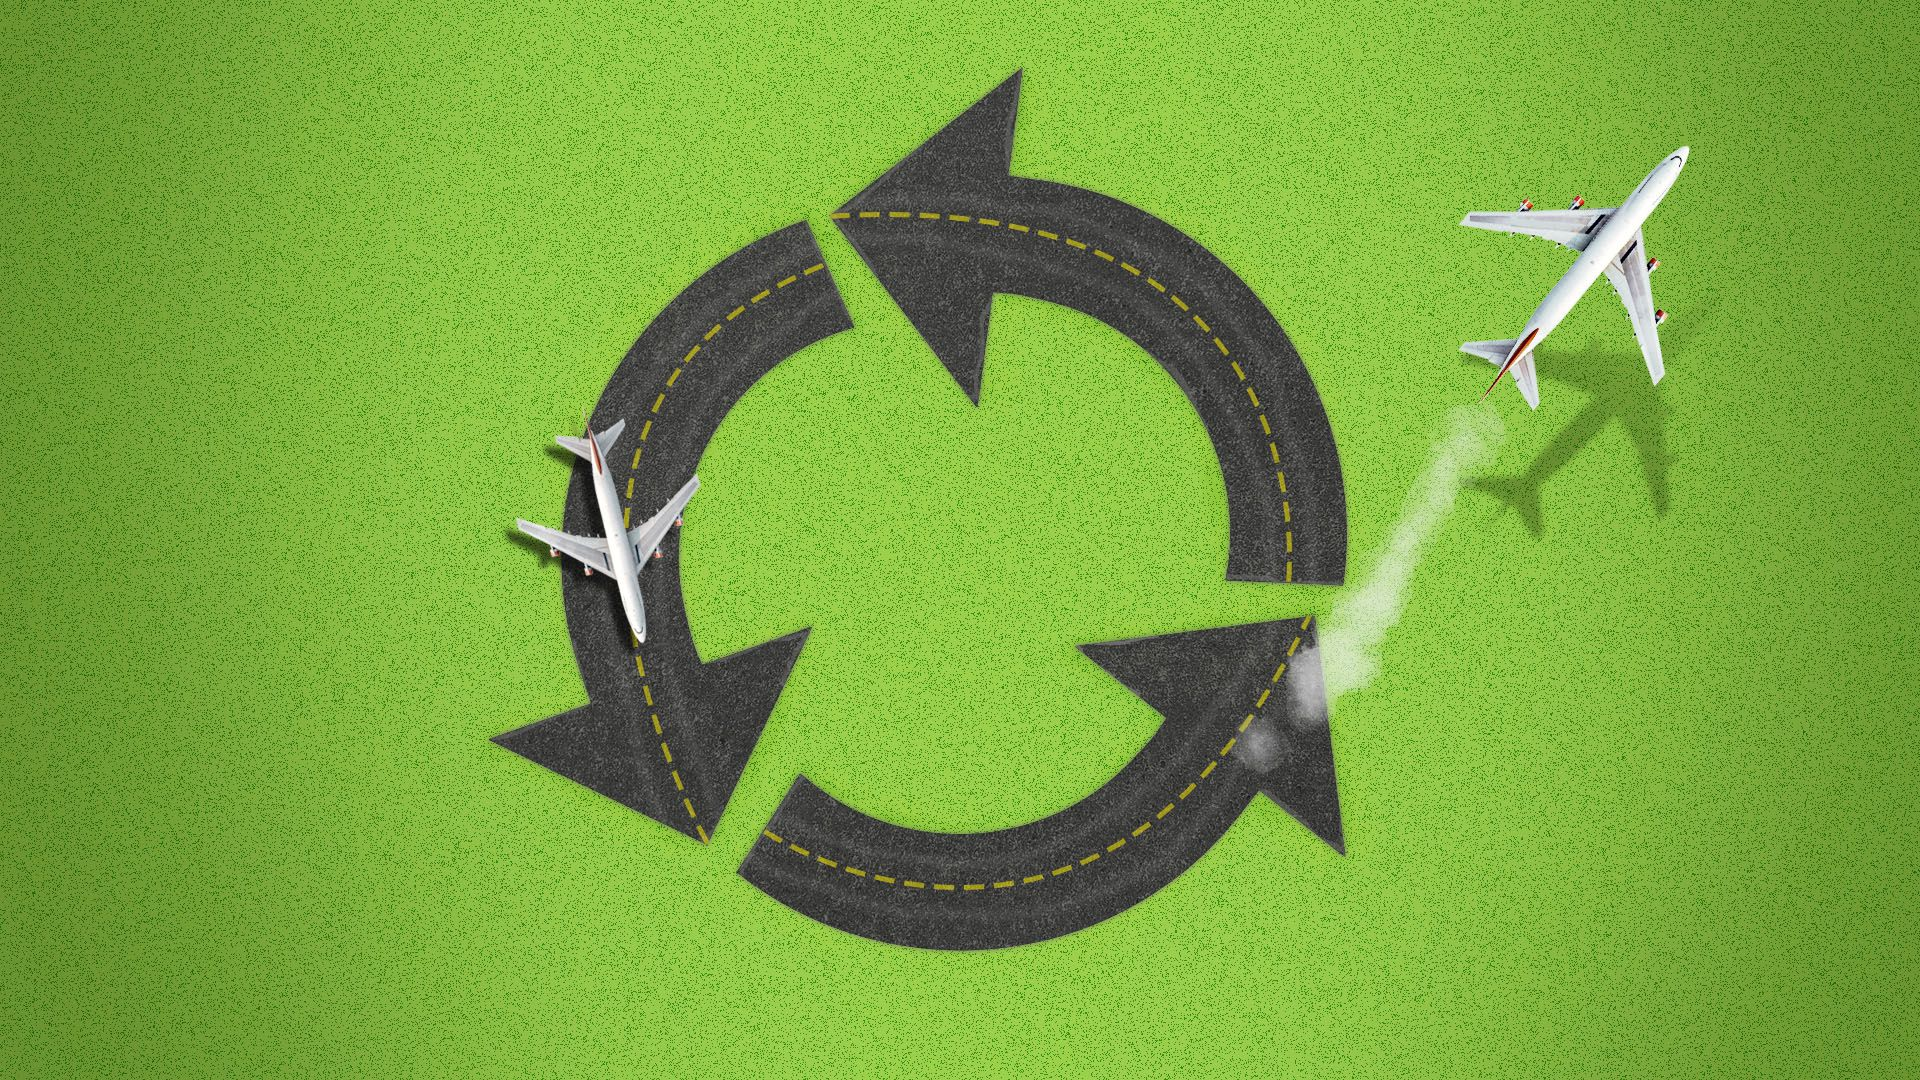 Illustration of an airplane runway in the shape of a recycling symbol